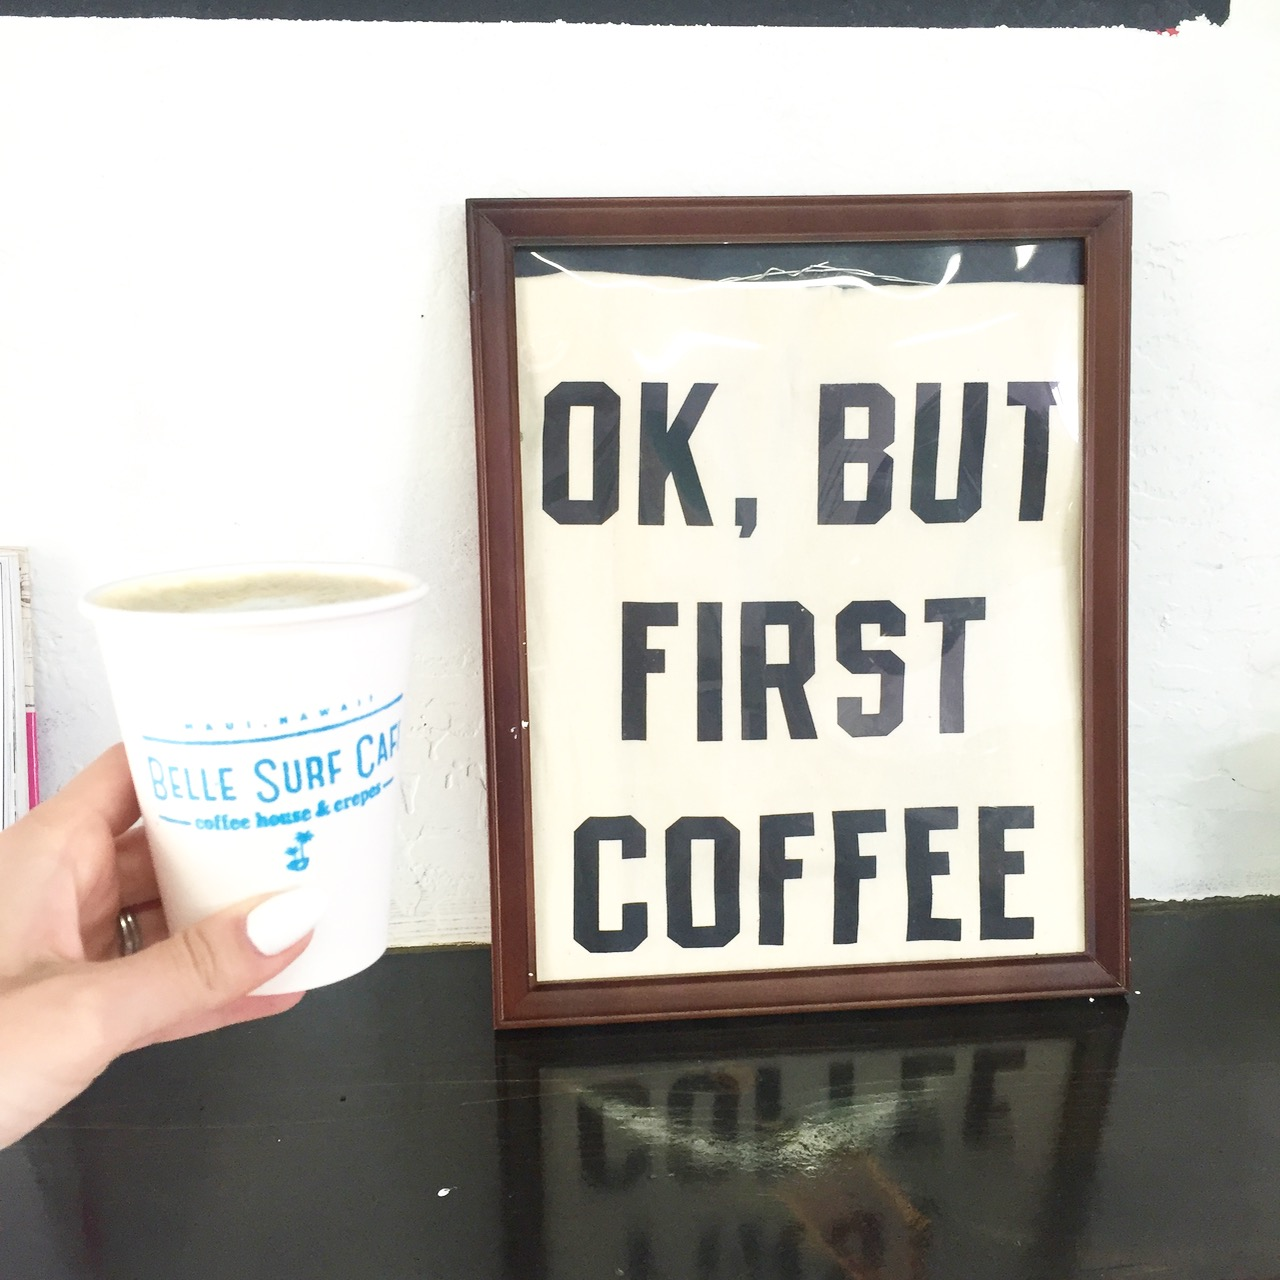 OK but first coffee at Belle Surf Cafe